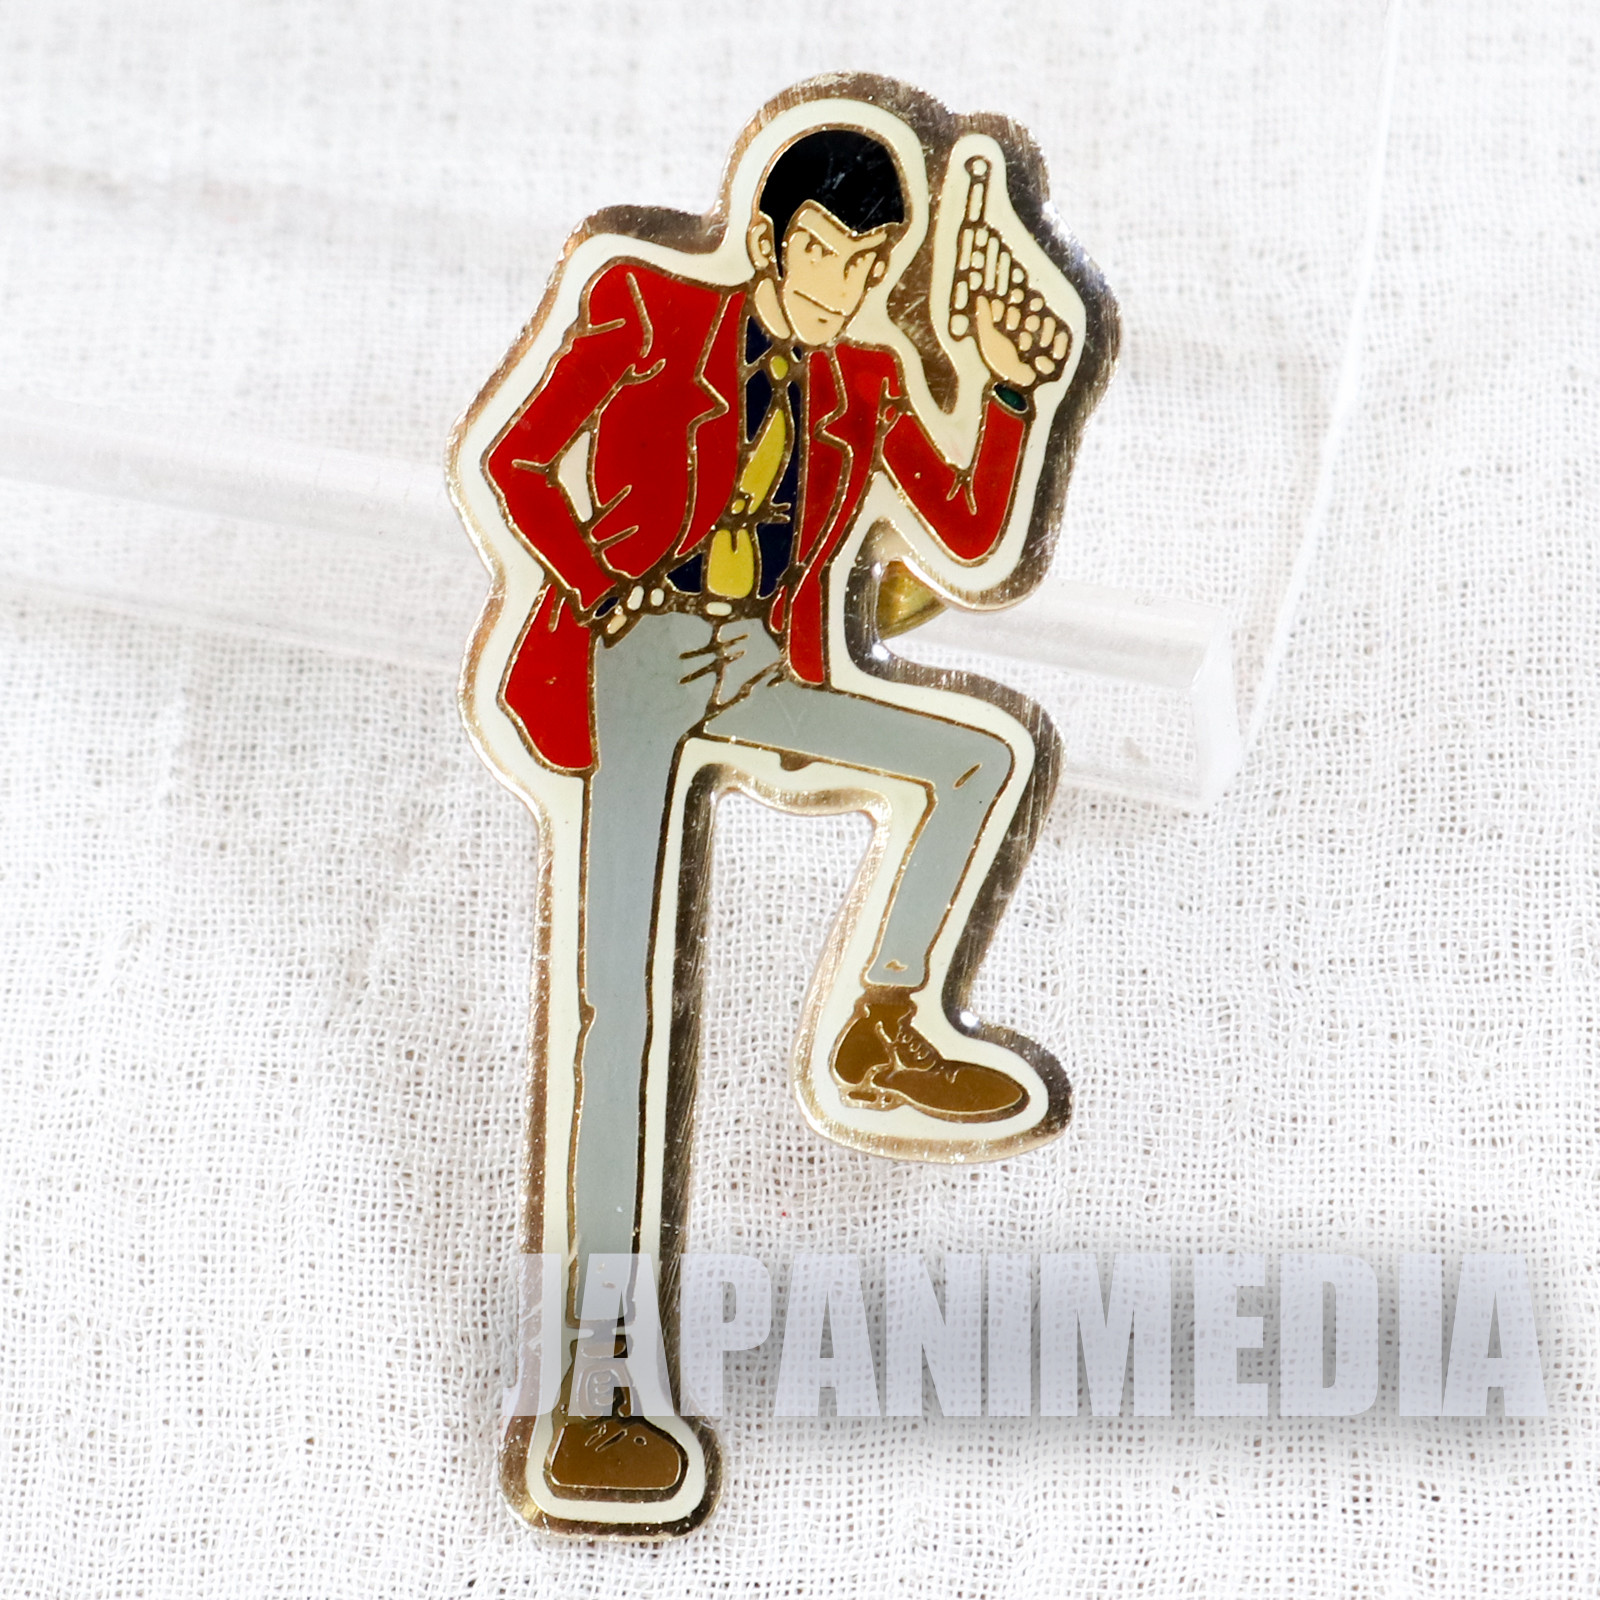 Lupin the Third (3rd) Metal Pins #2 JAPAN ANIME